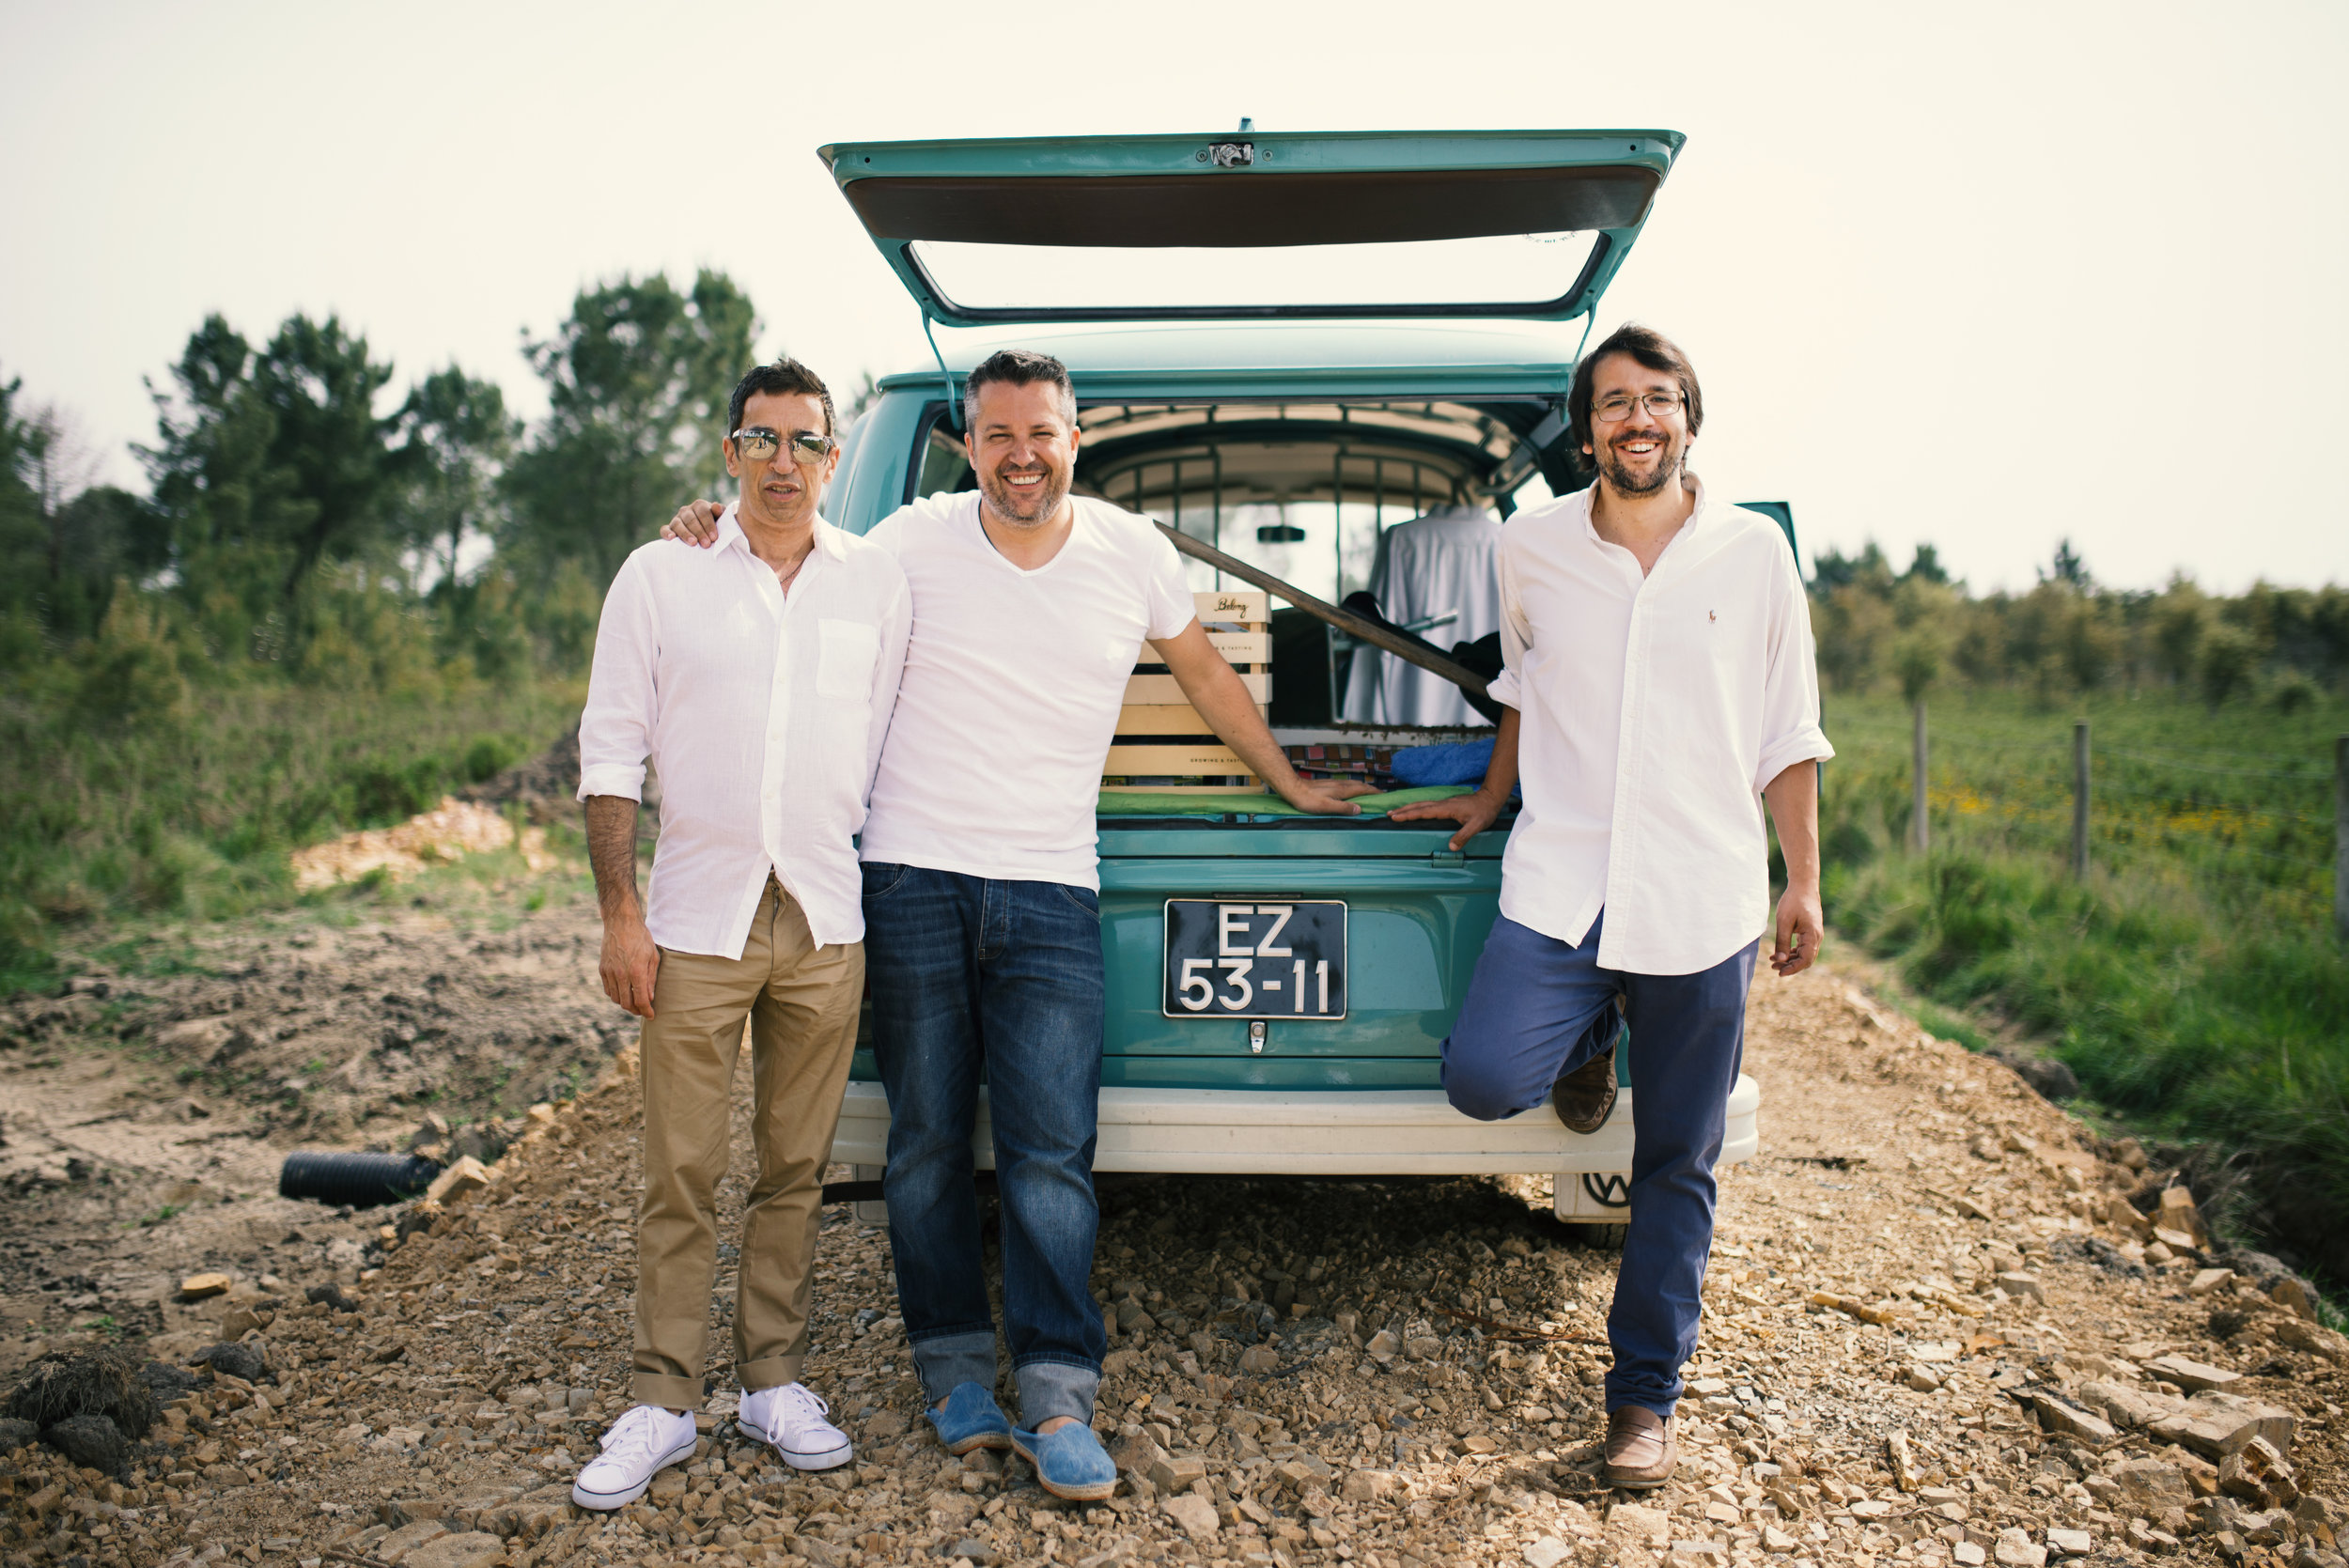 The Quinta's Co-Founders, Photo Courtesy of Quinta do Craveiral